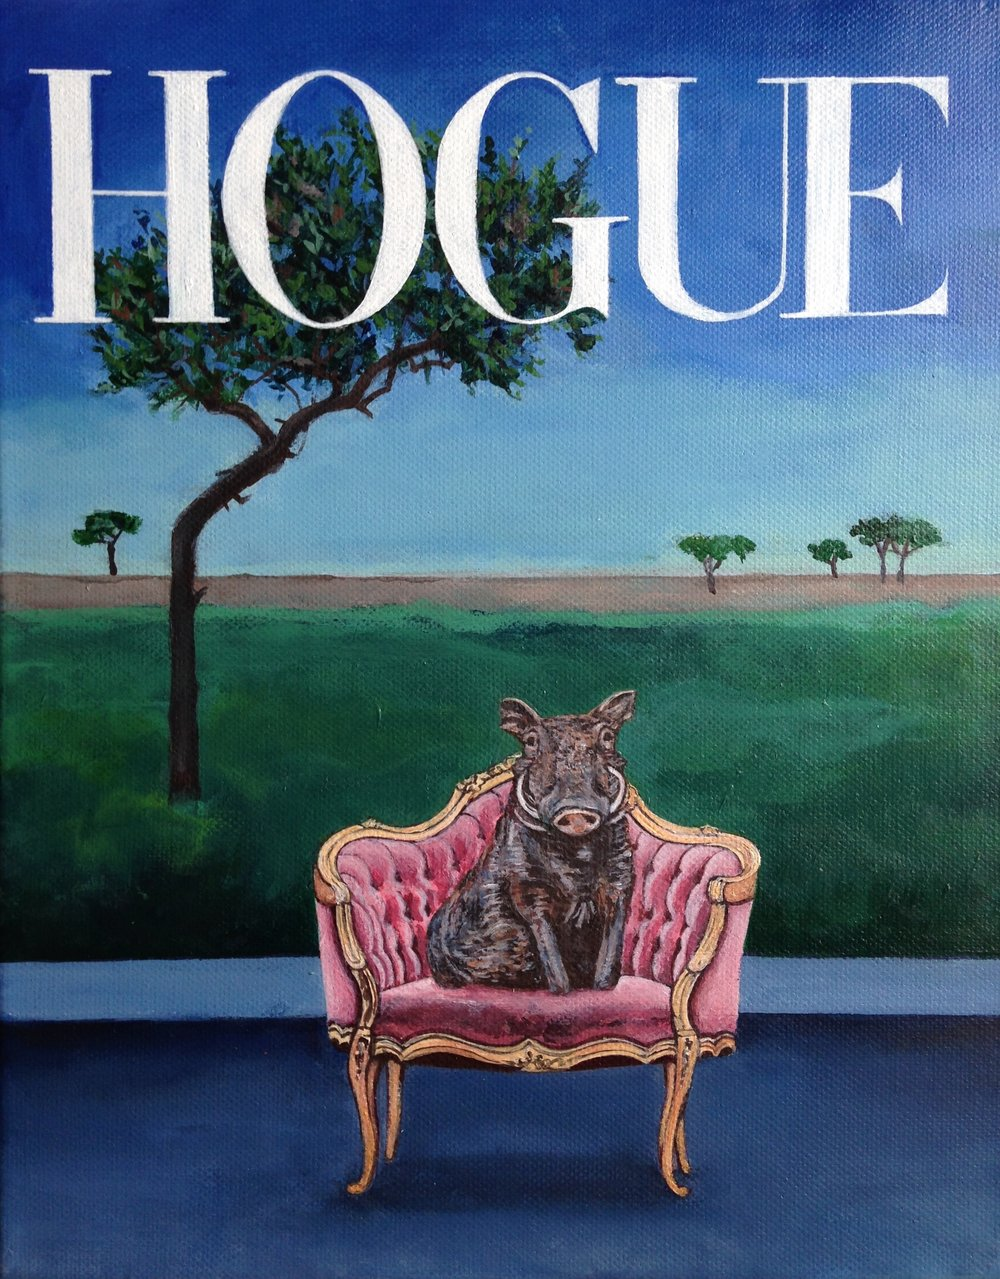 hogue, 9.5''x12'', acrylic on canvas, 2017